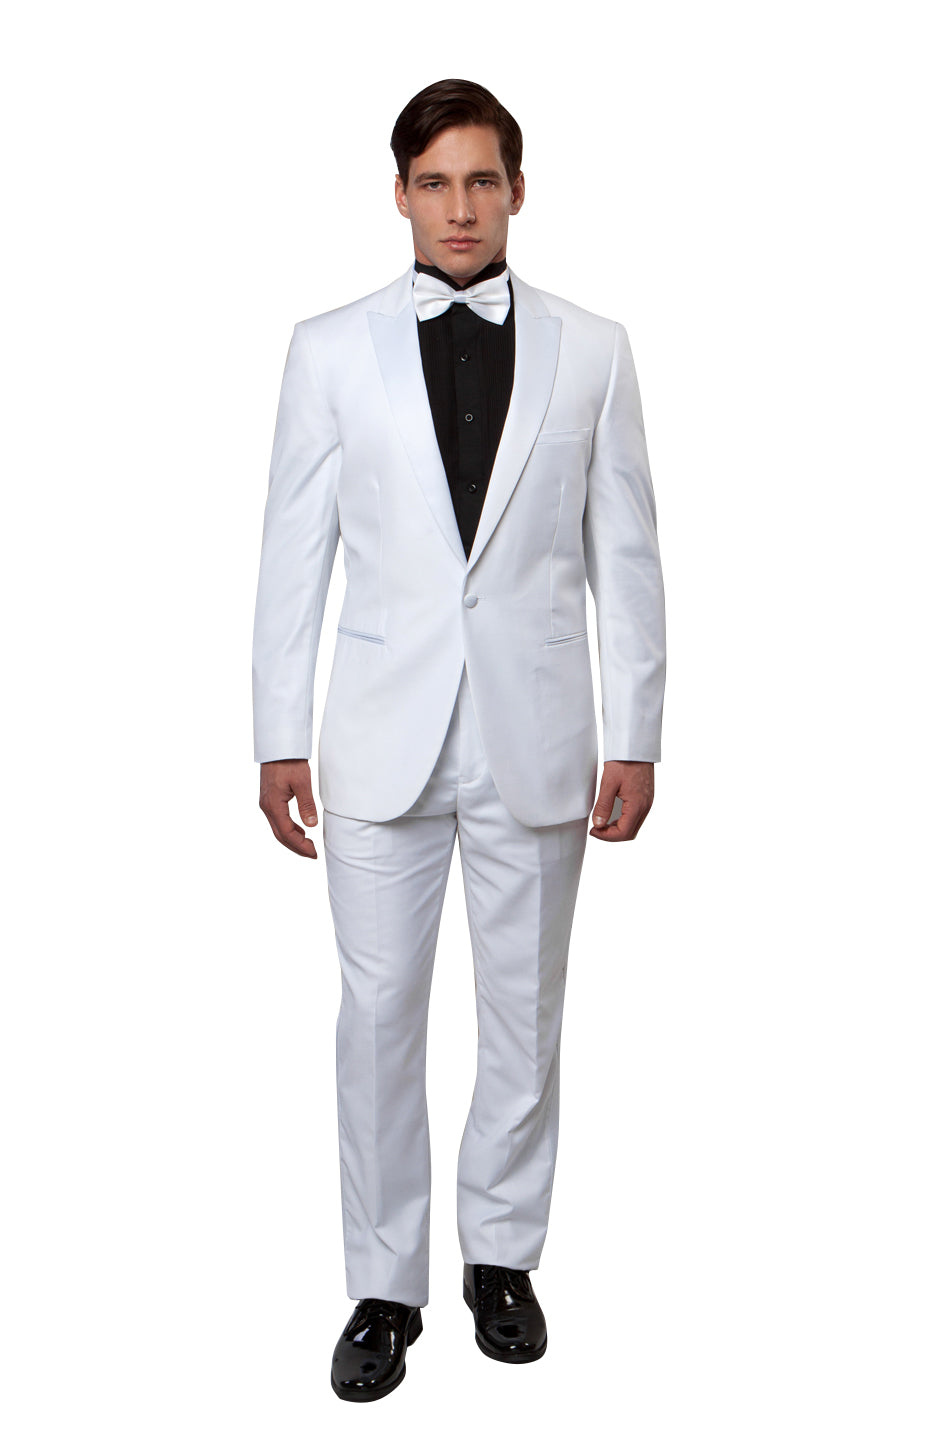 Peak Lapel Tuxedo Solid Slim Fit Prom Tuxedos For Men